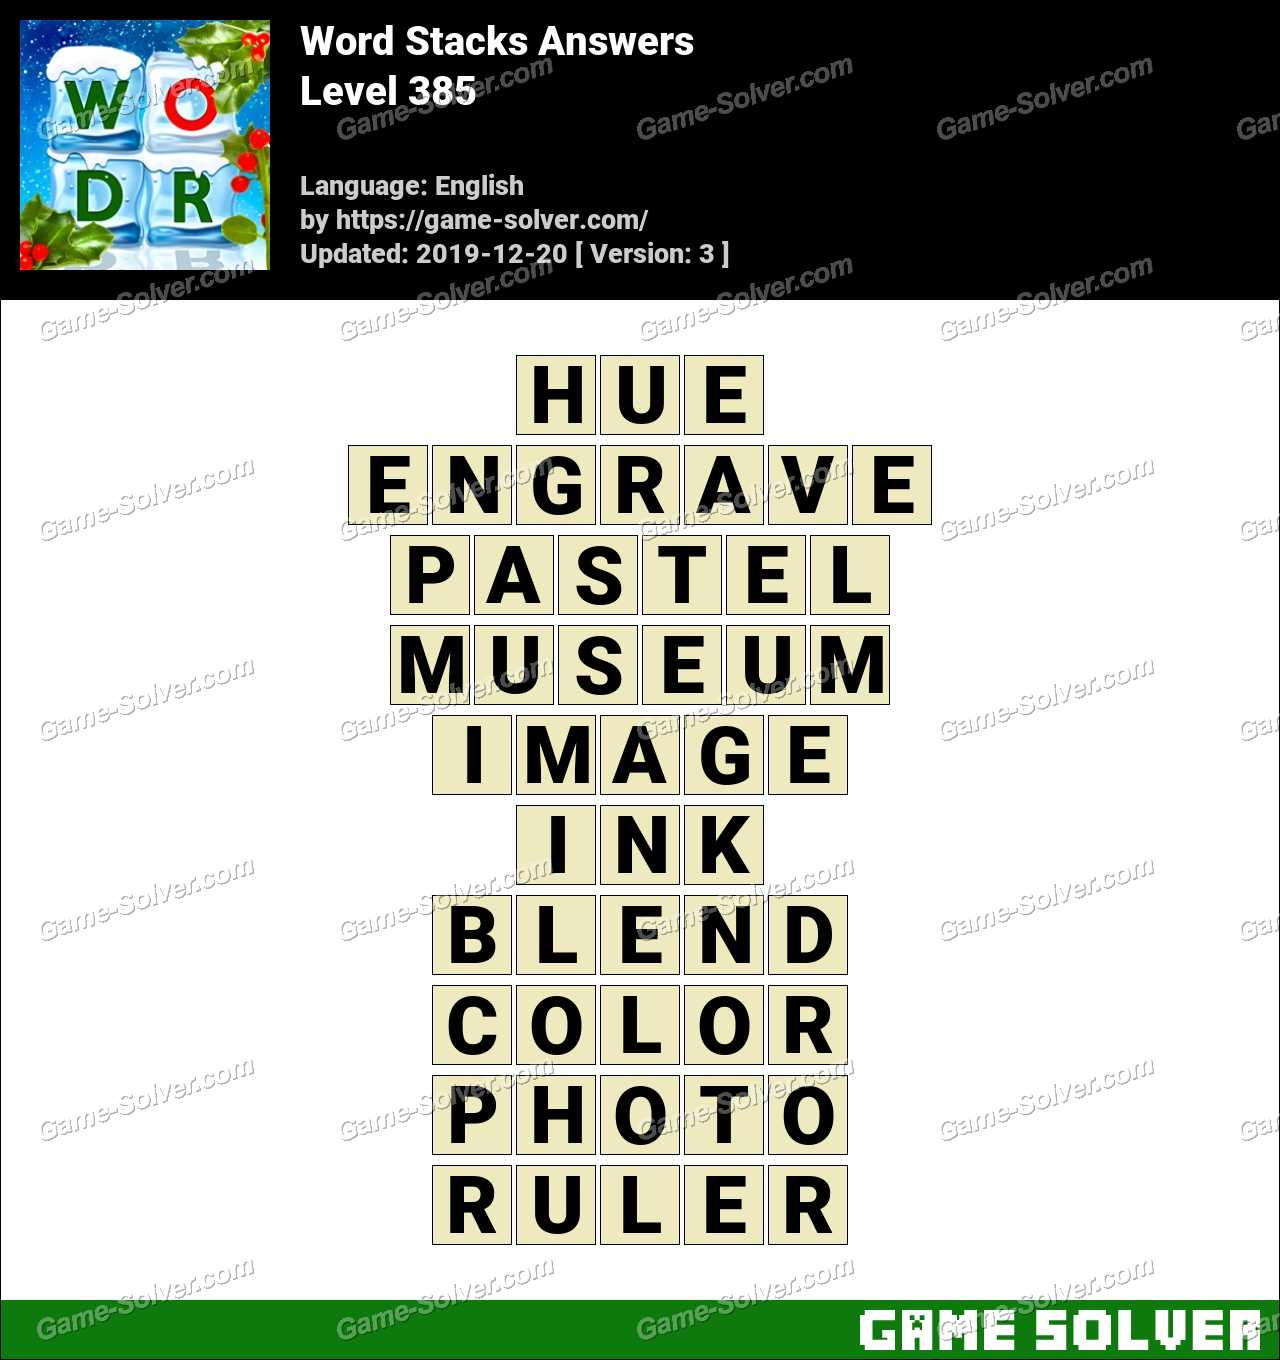 Word Stacks Level 385 Answers